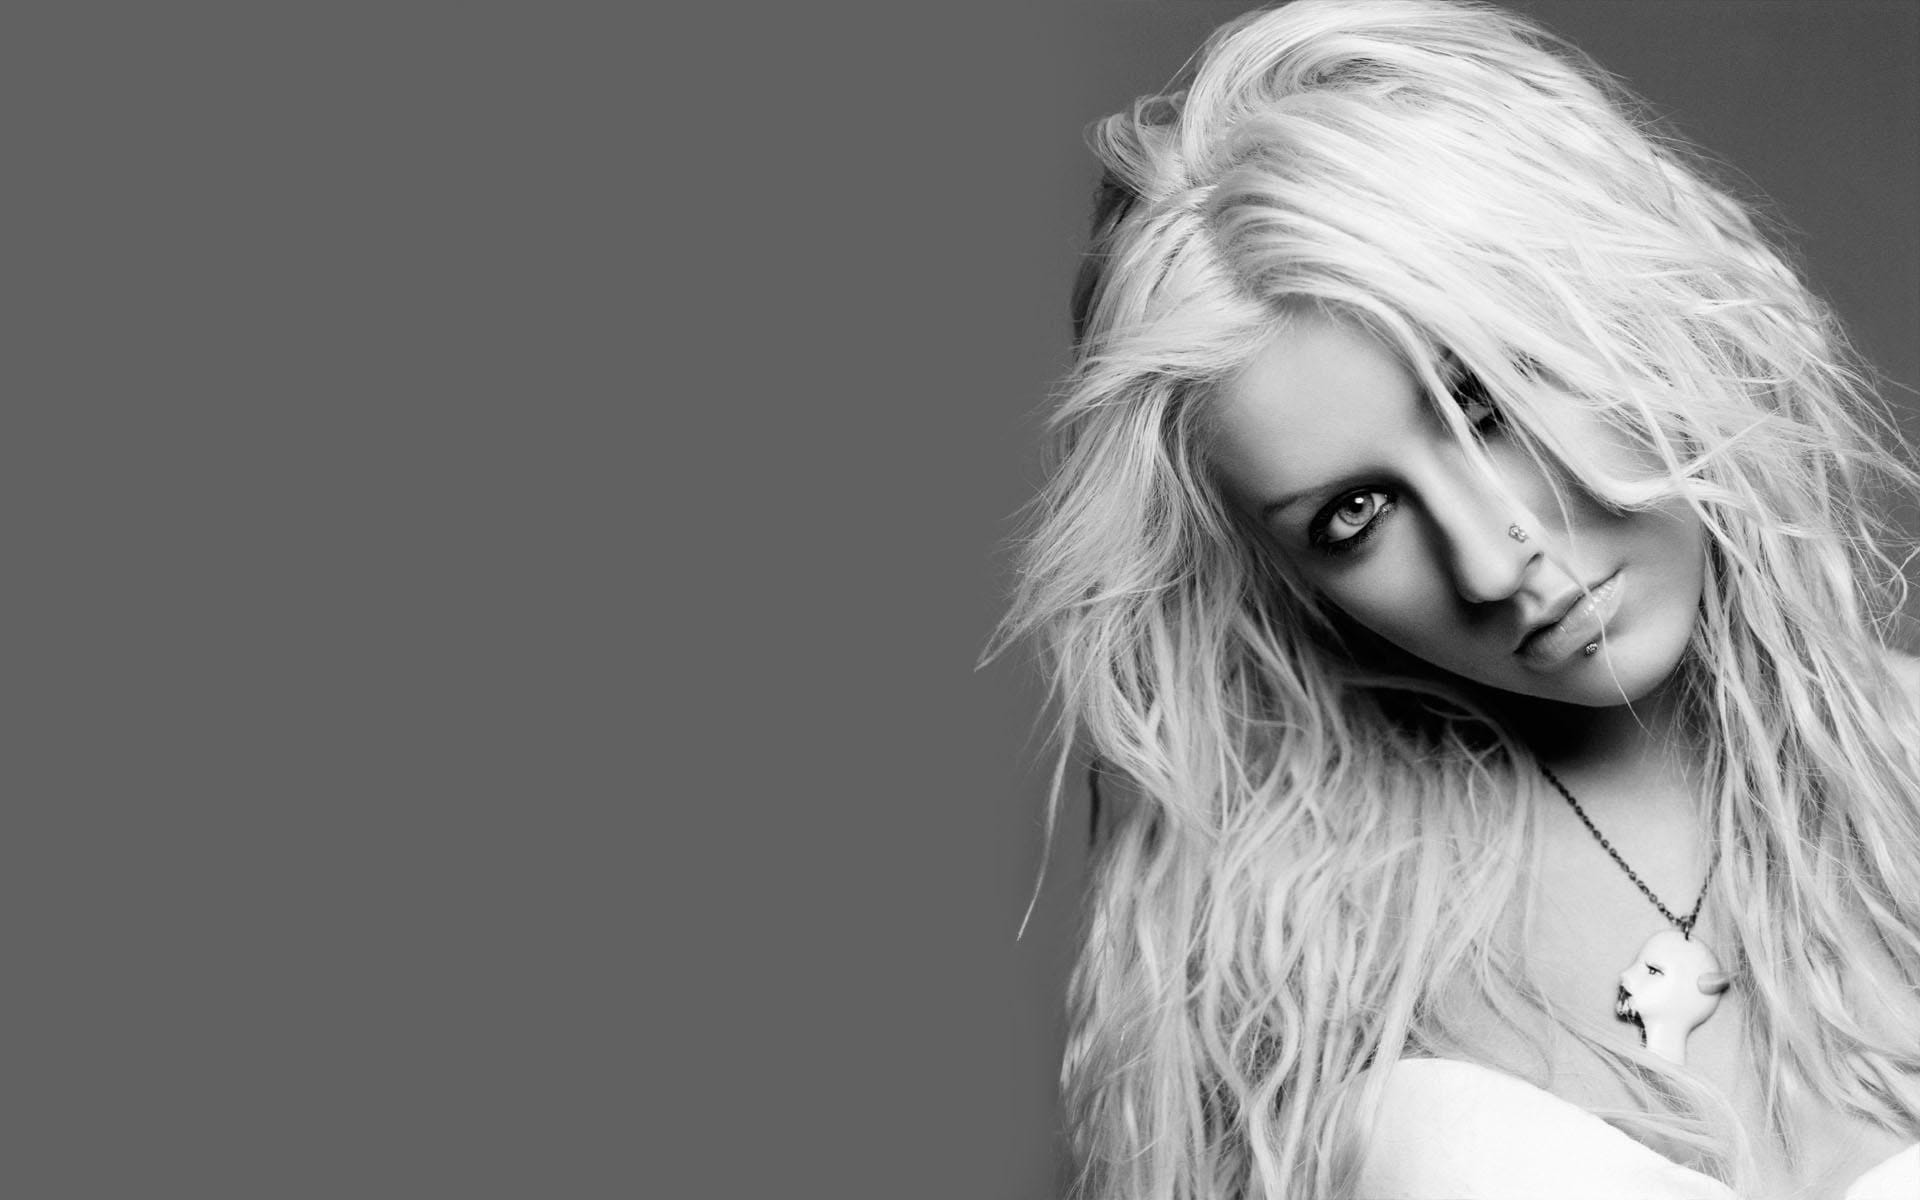 Christina Aguilera HD Wallpapers 7wallpapersnet 1920x1200